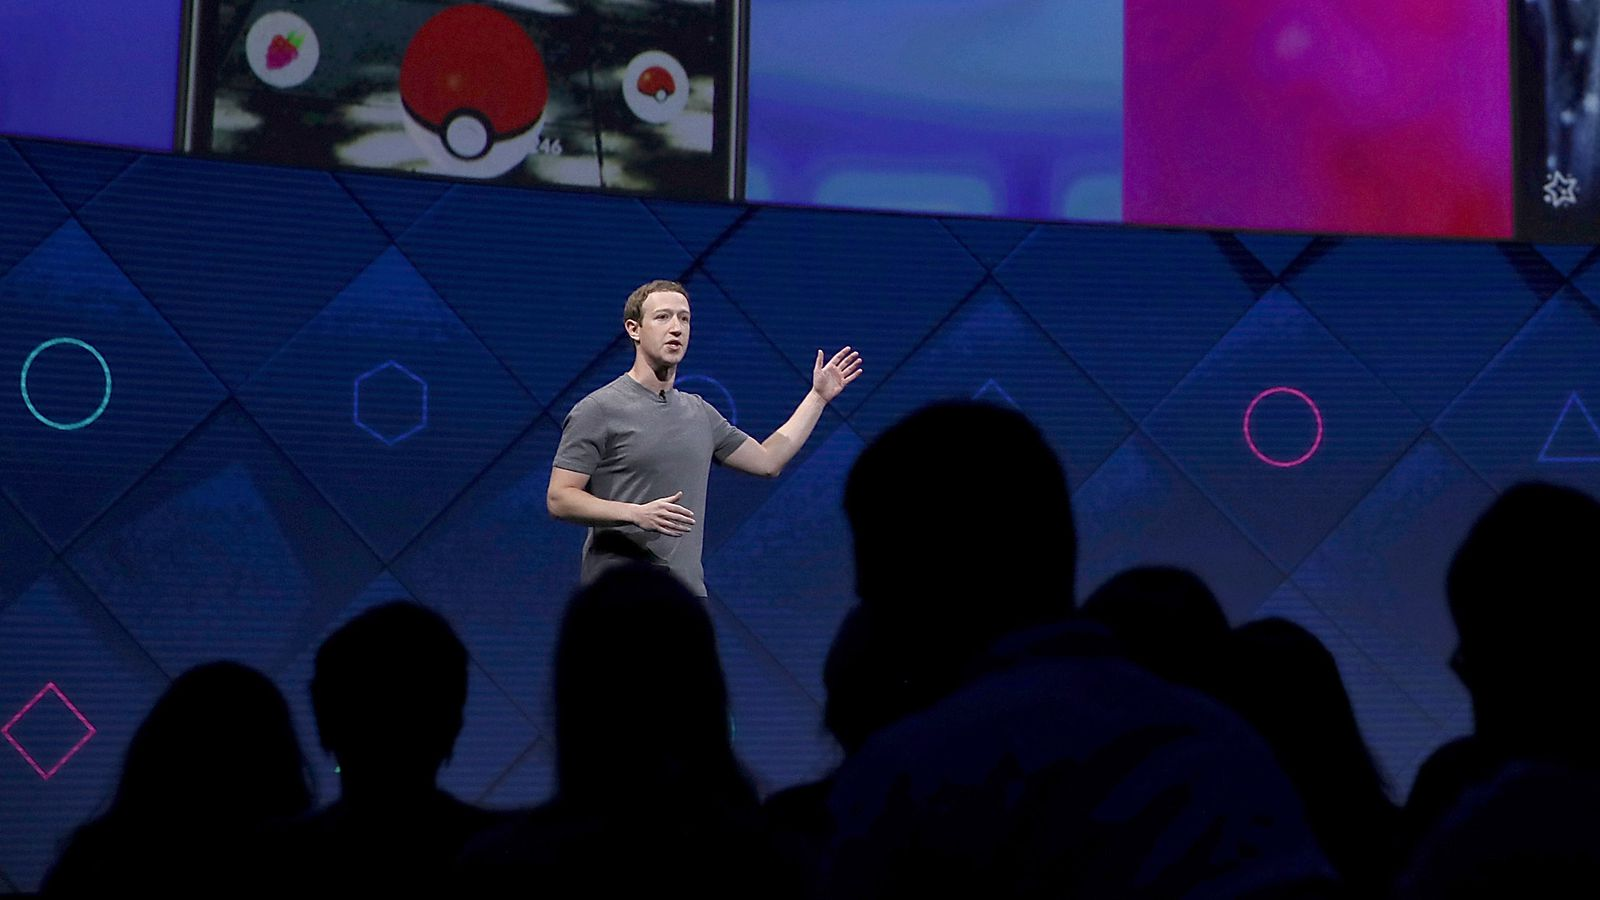 Here are all the New Products Facebook Announced at F8